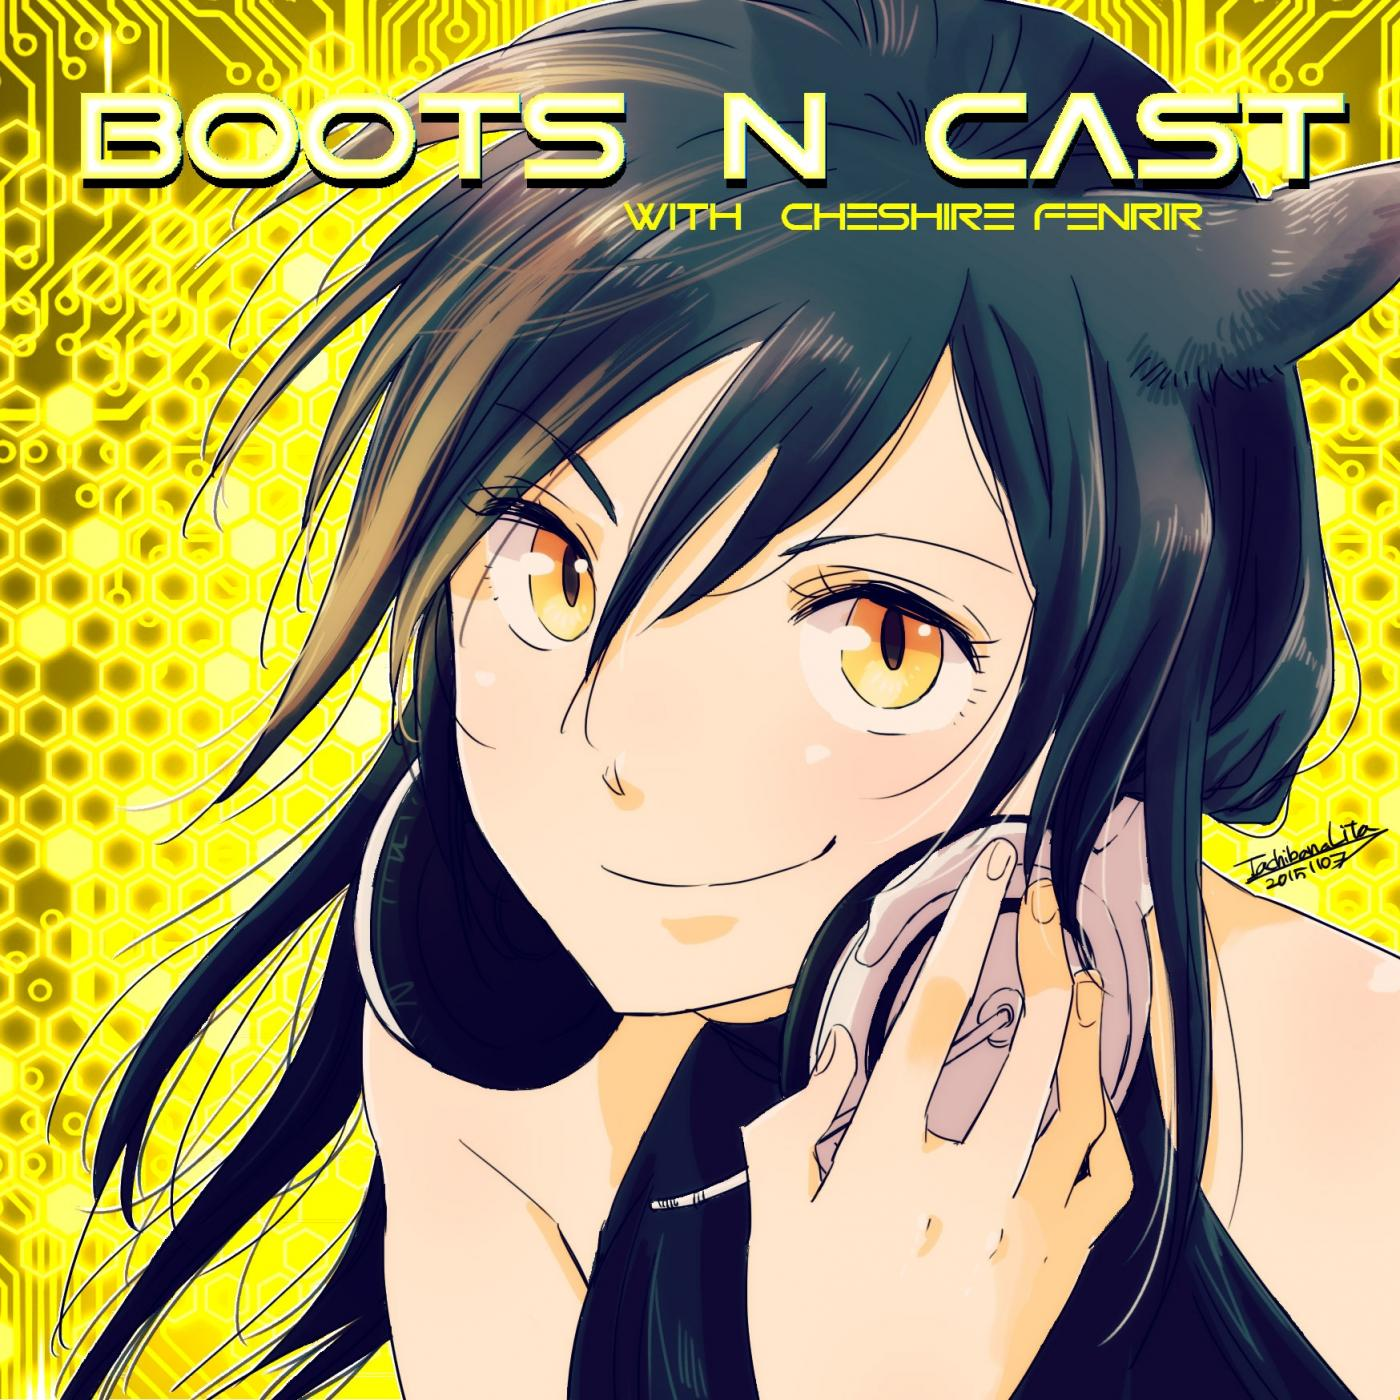 Boots-n-Cast